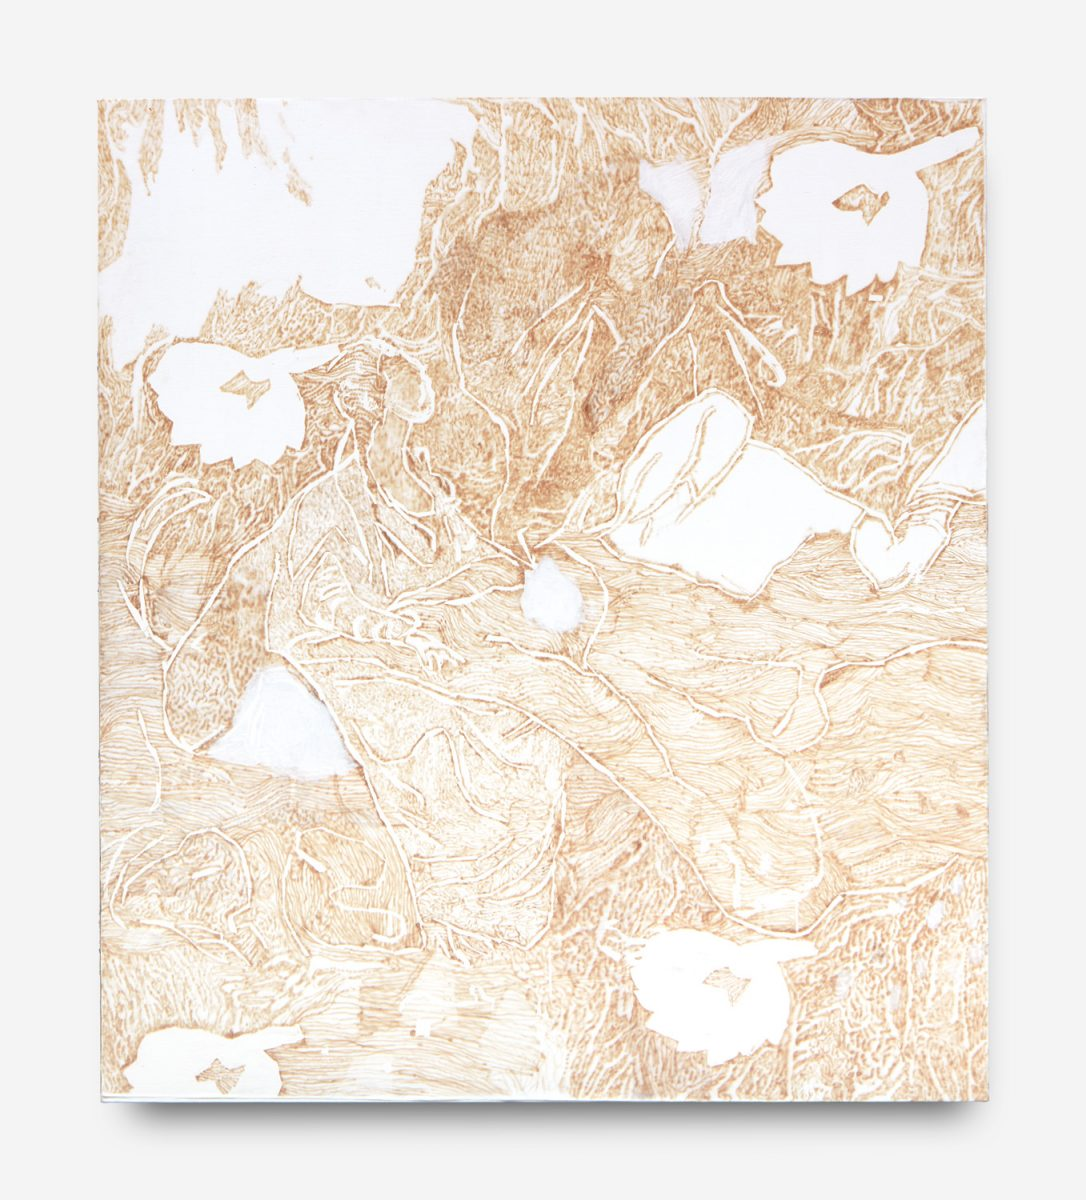 Unpicked Boarders - Mushroom Coloured Pages | acrylic and cotton needlework on linen | 150 x 170cm | 2018